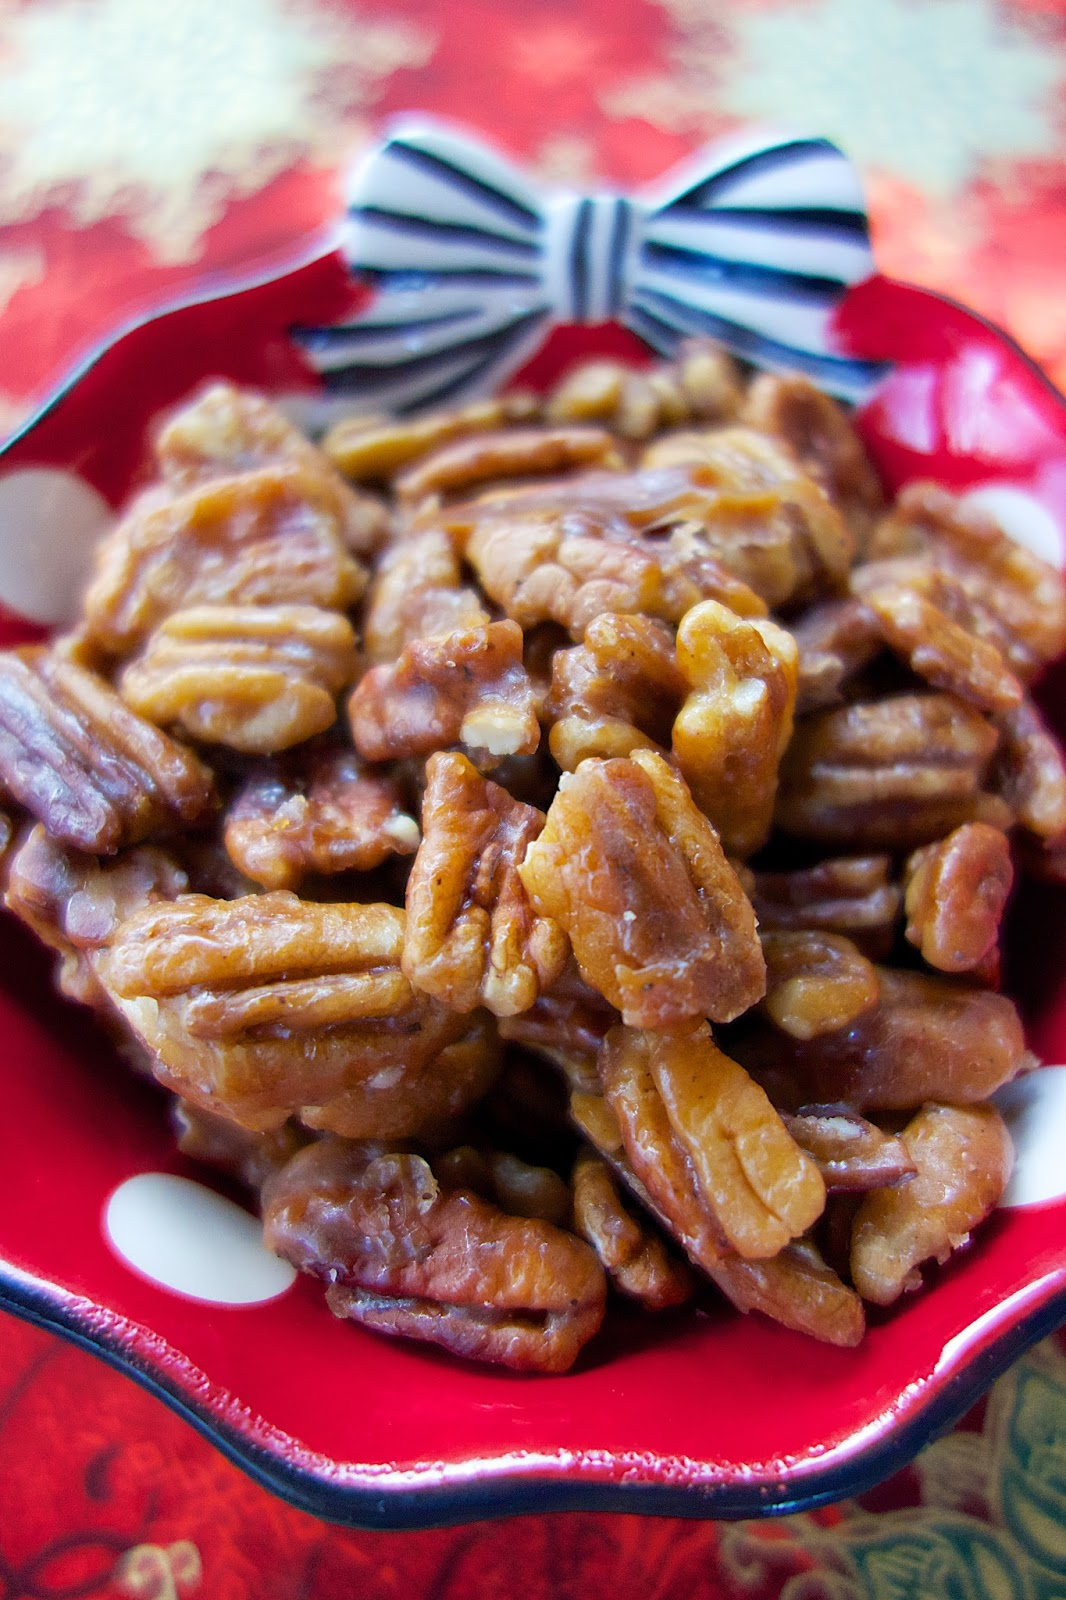 Peppered Glazed Pecans - you'll want to double the recipe - they go fast! Pecans coated in brown sugar, butter, corn syrup, pepper and salt. Great for snacking on at holiday parties! Also makes a great homemade gift! Everyone LOVES this easy snack recipe!